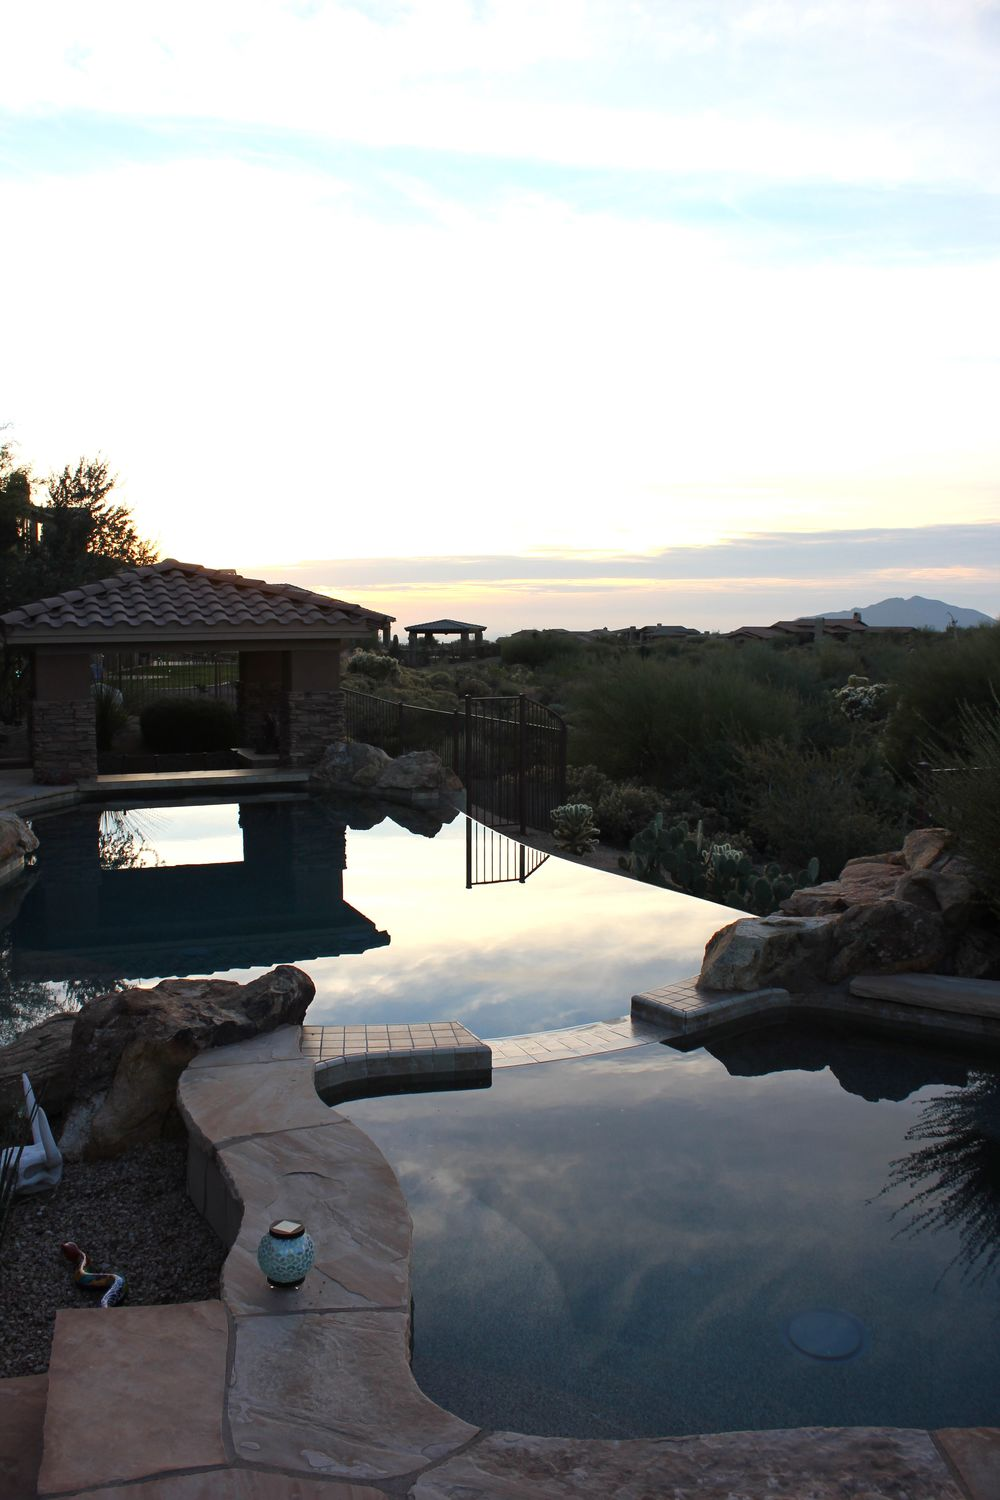 Home away from home - Scottsdale, AZ.